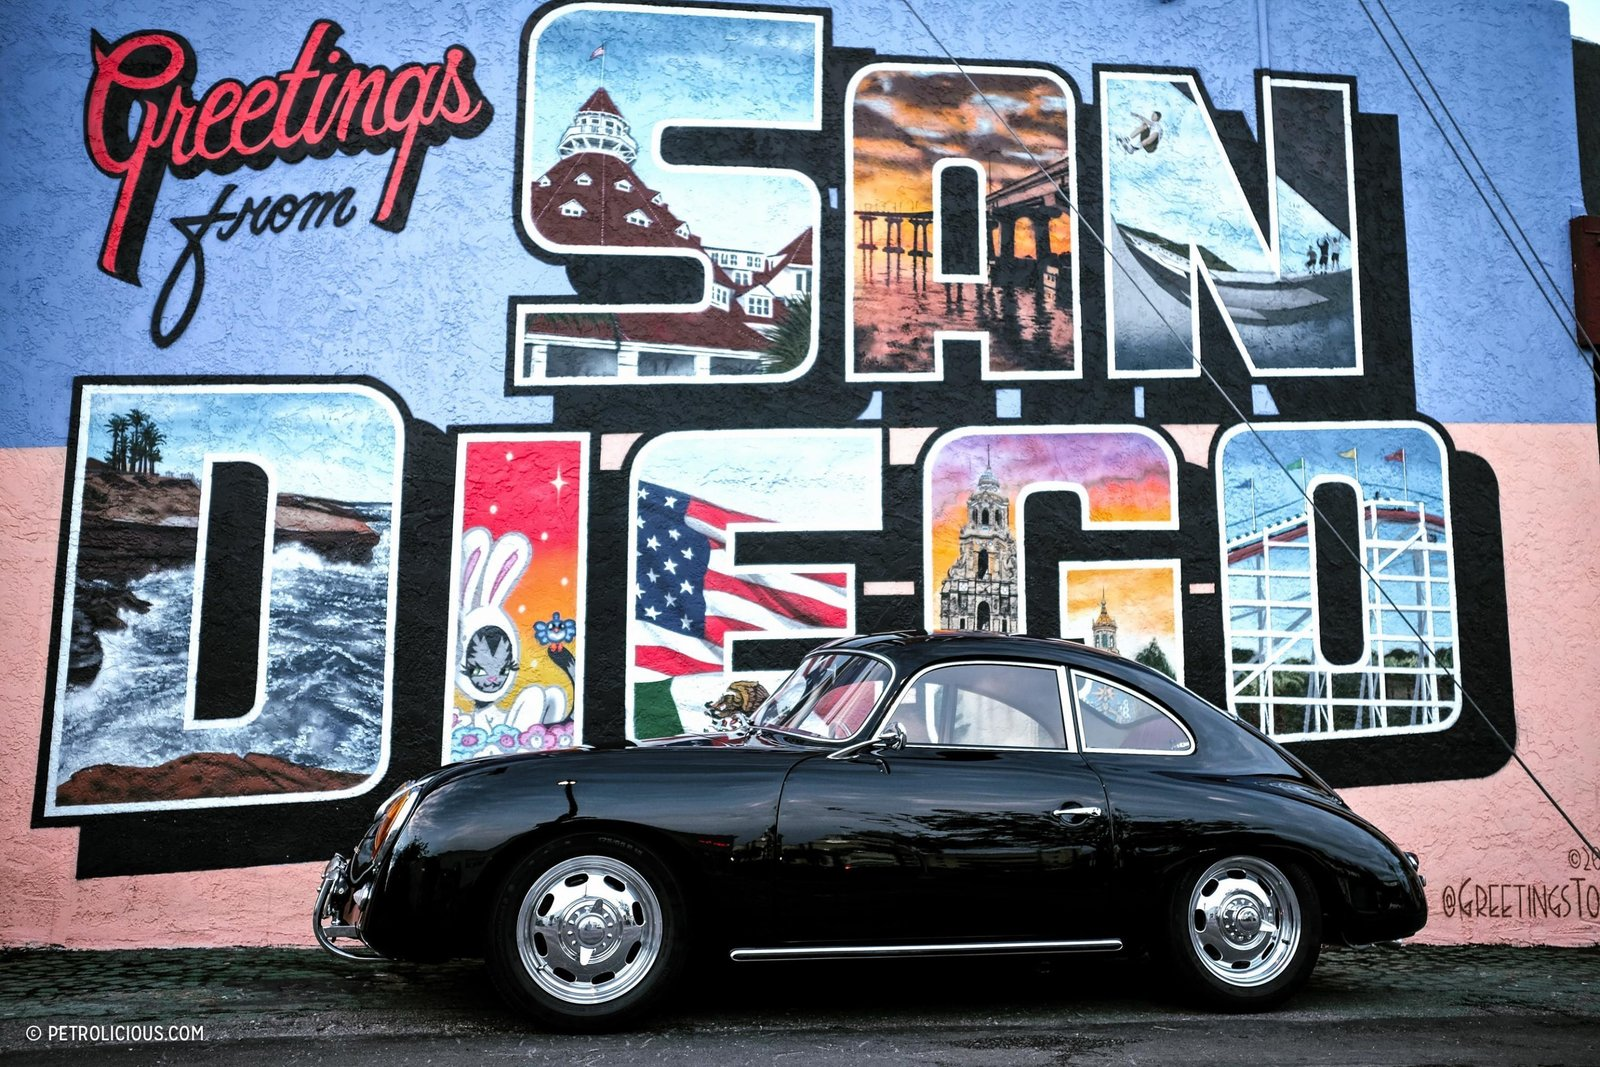 Photo 1 of 16 in This Stunning Outlaw 356 Can Be Found Cruising The Streets Of San Diego